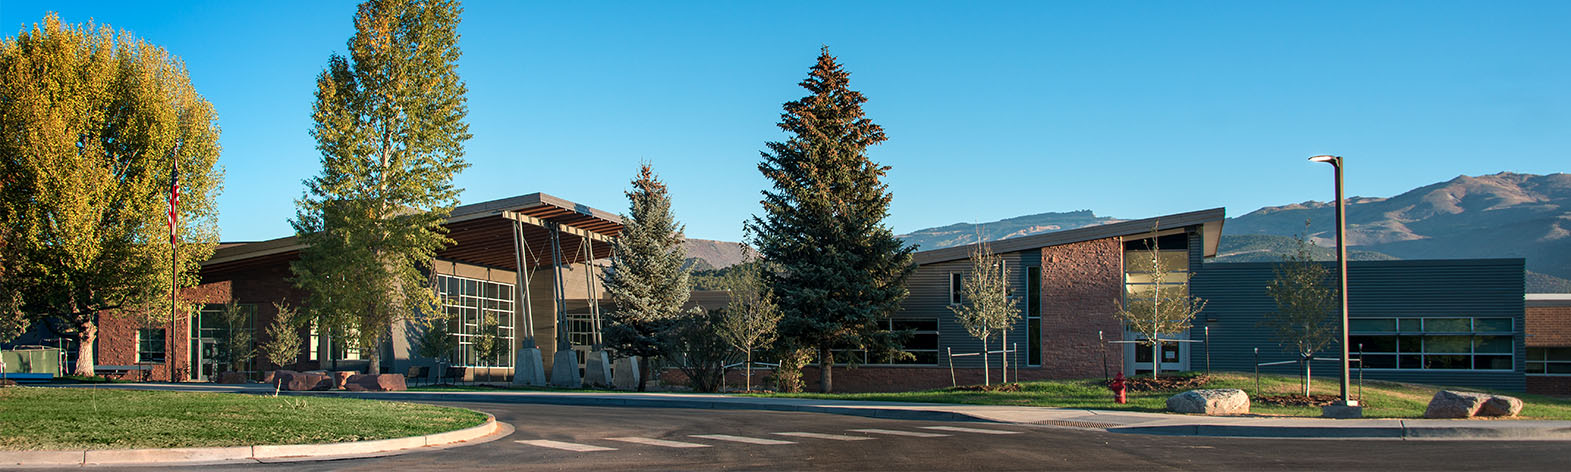 Eagle Valley Middle School